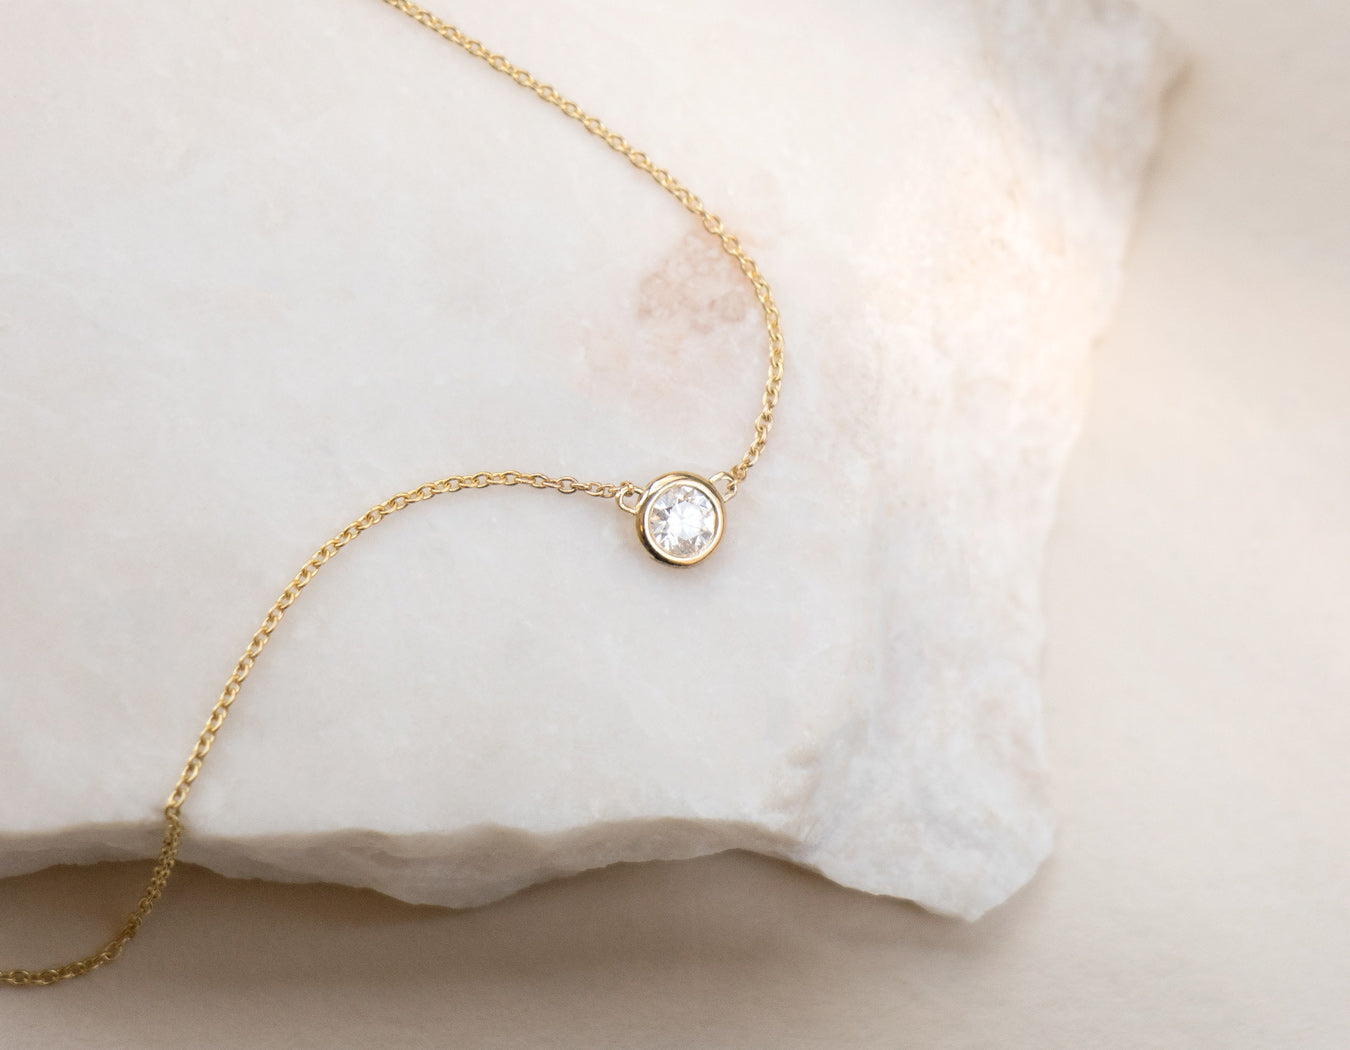 close up simple elegant Solitaire Necklace bezel set .1 carat round brilliant diamond Vrai & Oro modeled on granite